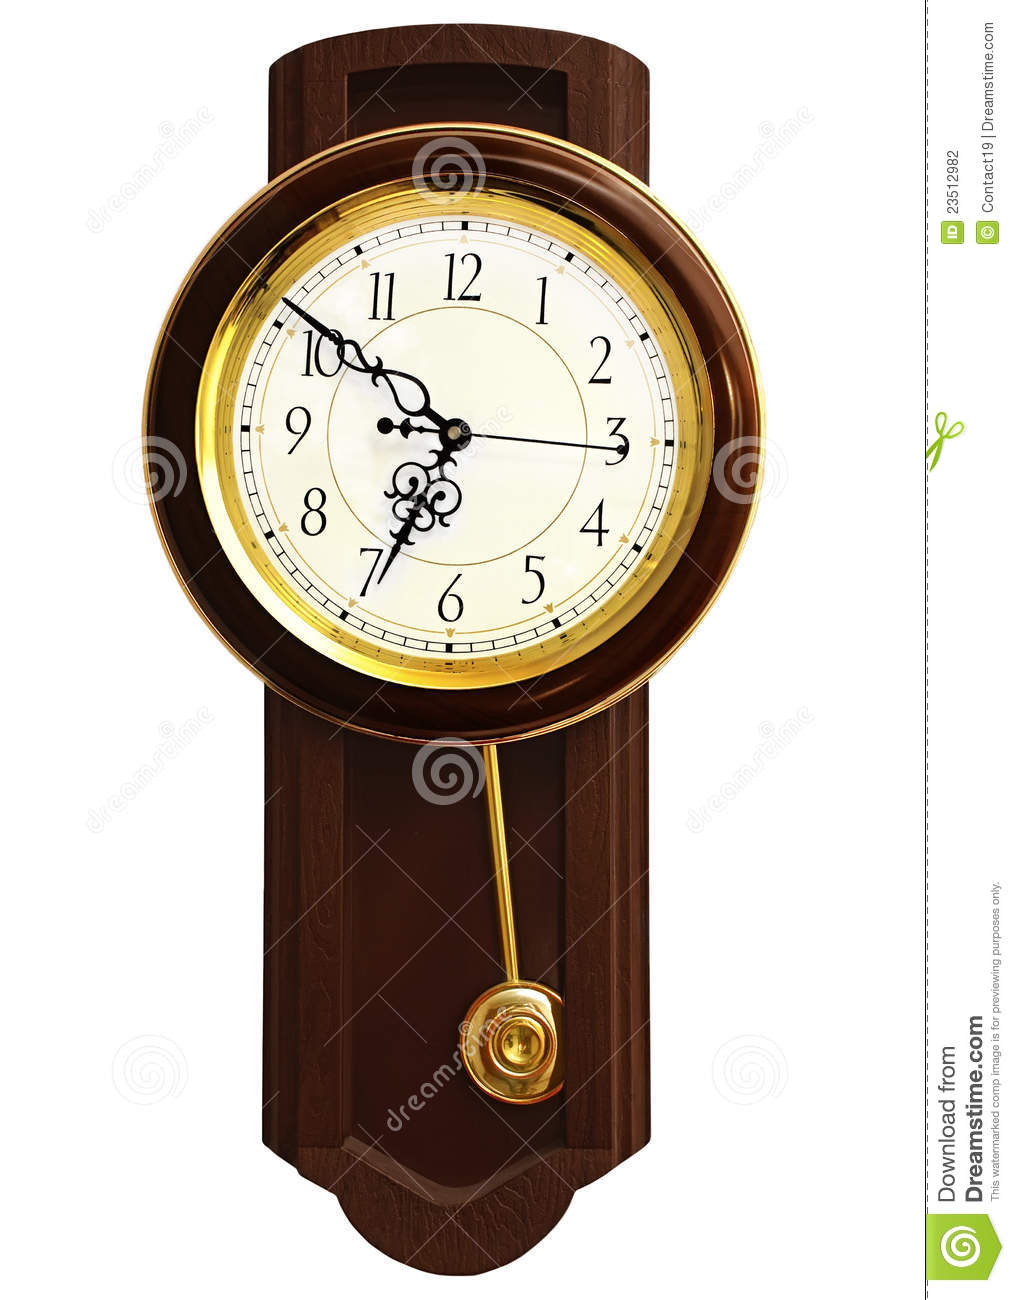 Wooden Wall Clock Stock Photography - Image: 23512982